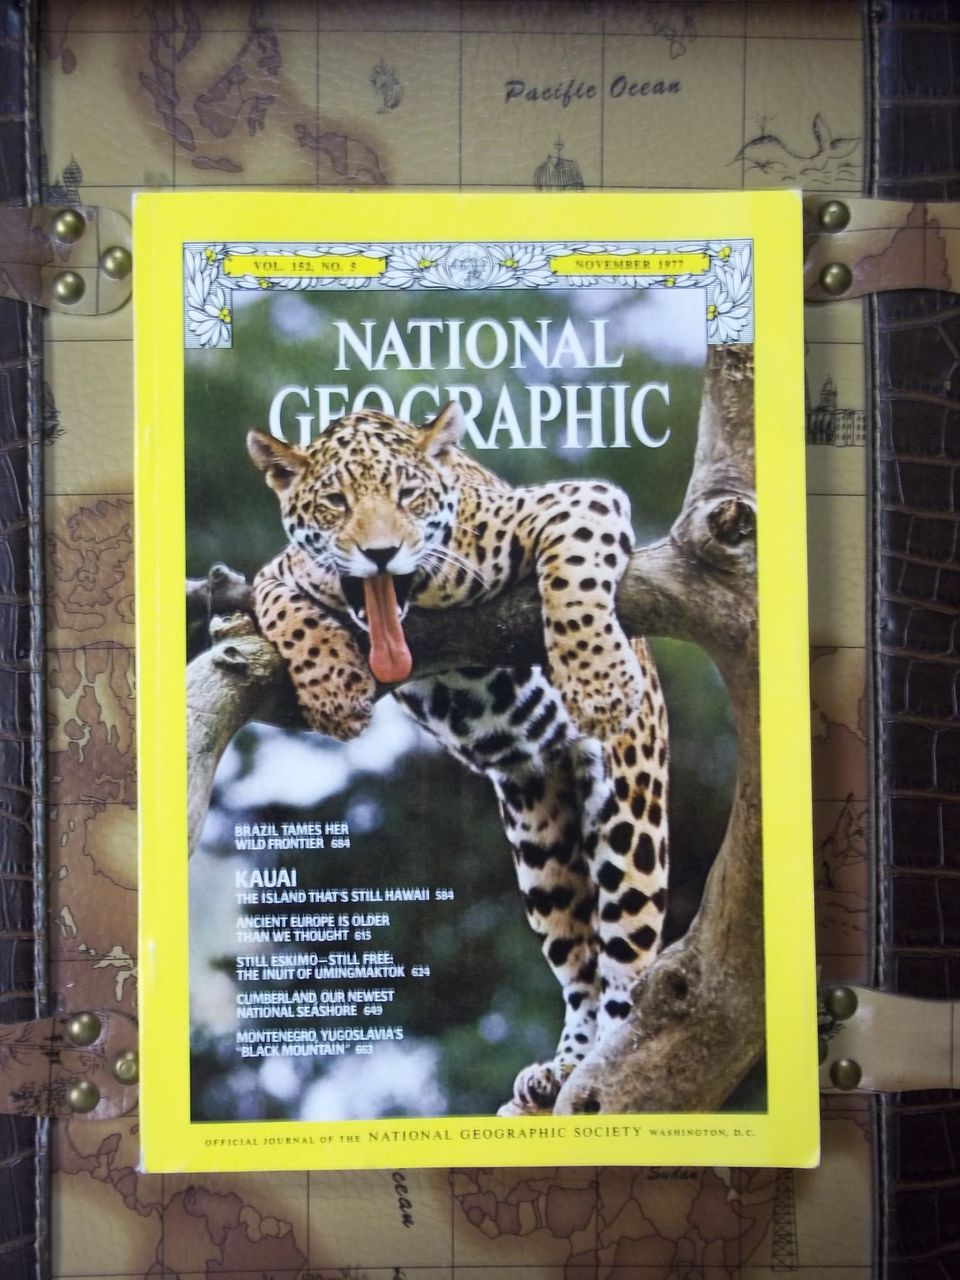 Vintage National Geographic Vol. 152, No. 5, November 1977